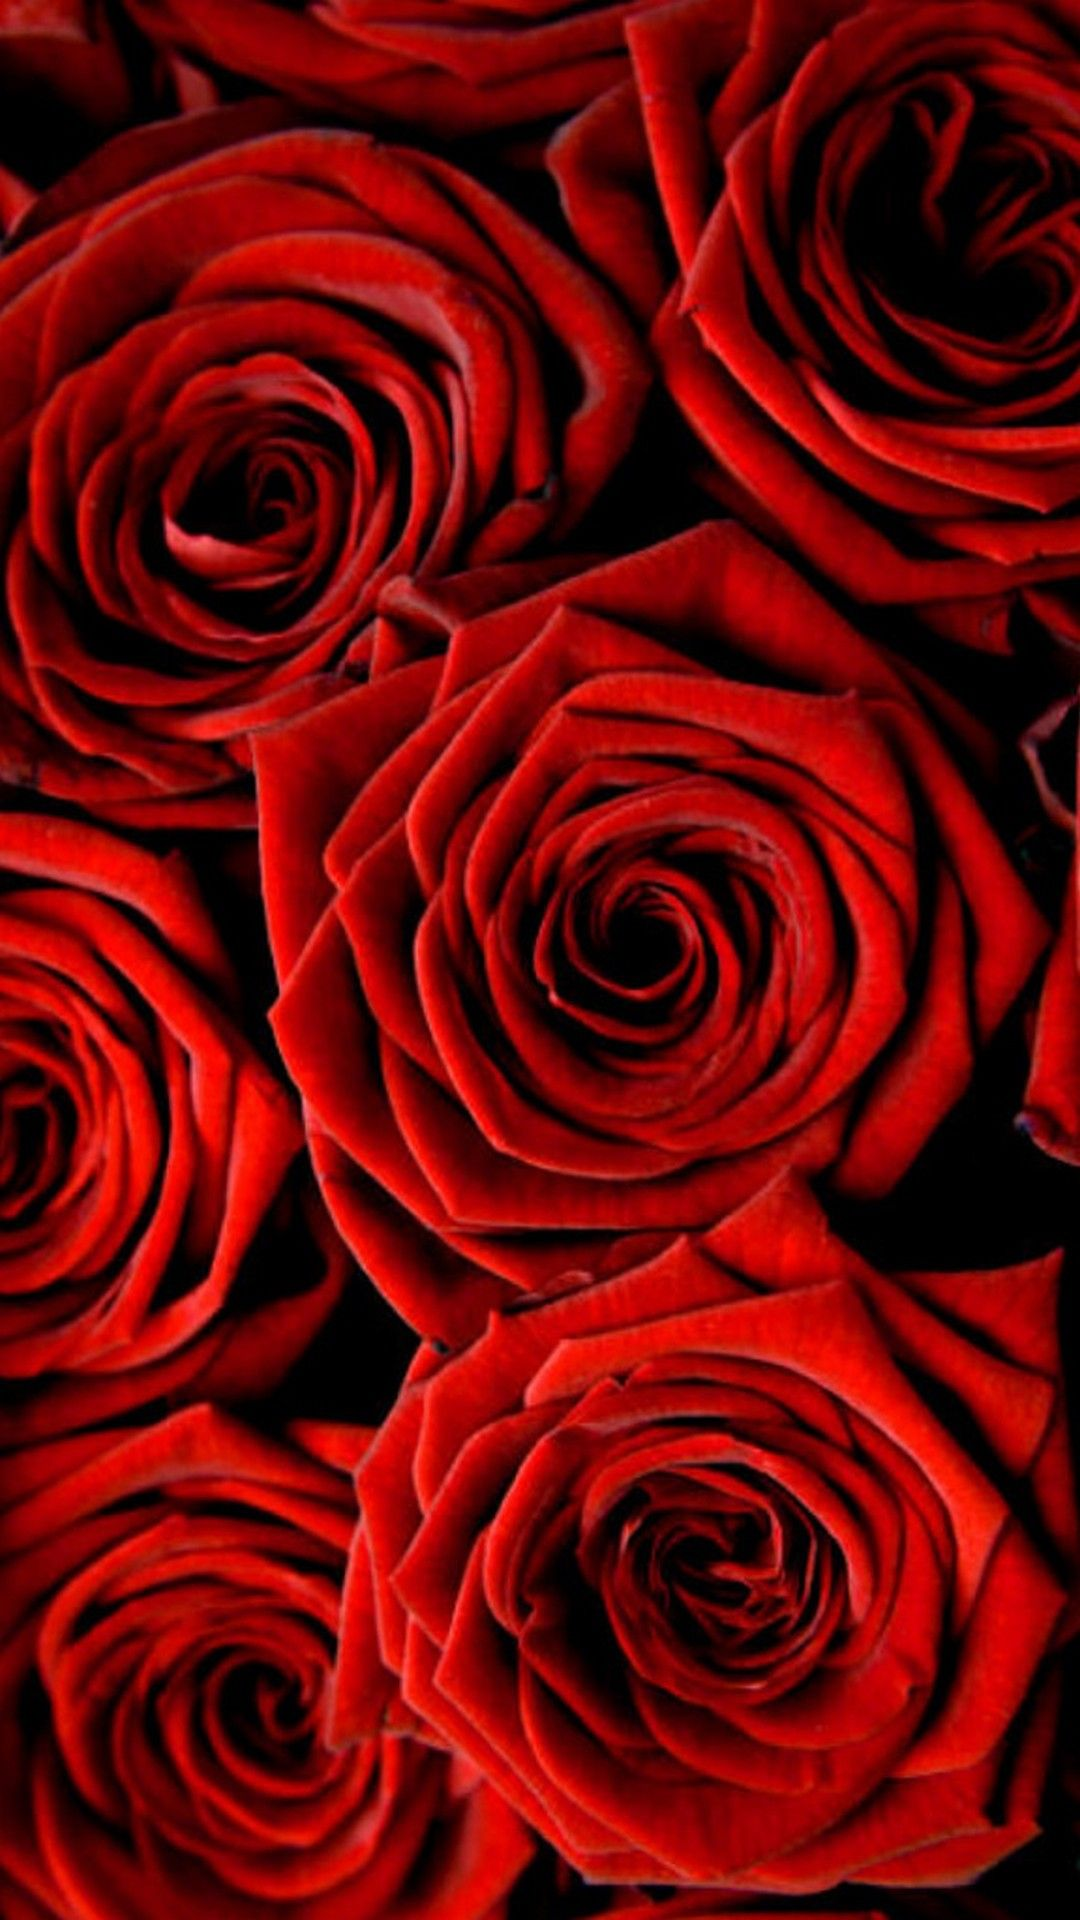 Rose Wallpaper For Iphone With Images Flower Phone Wallpaper